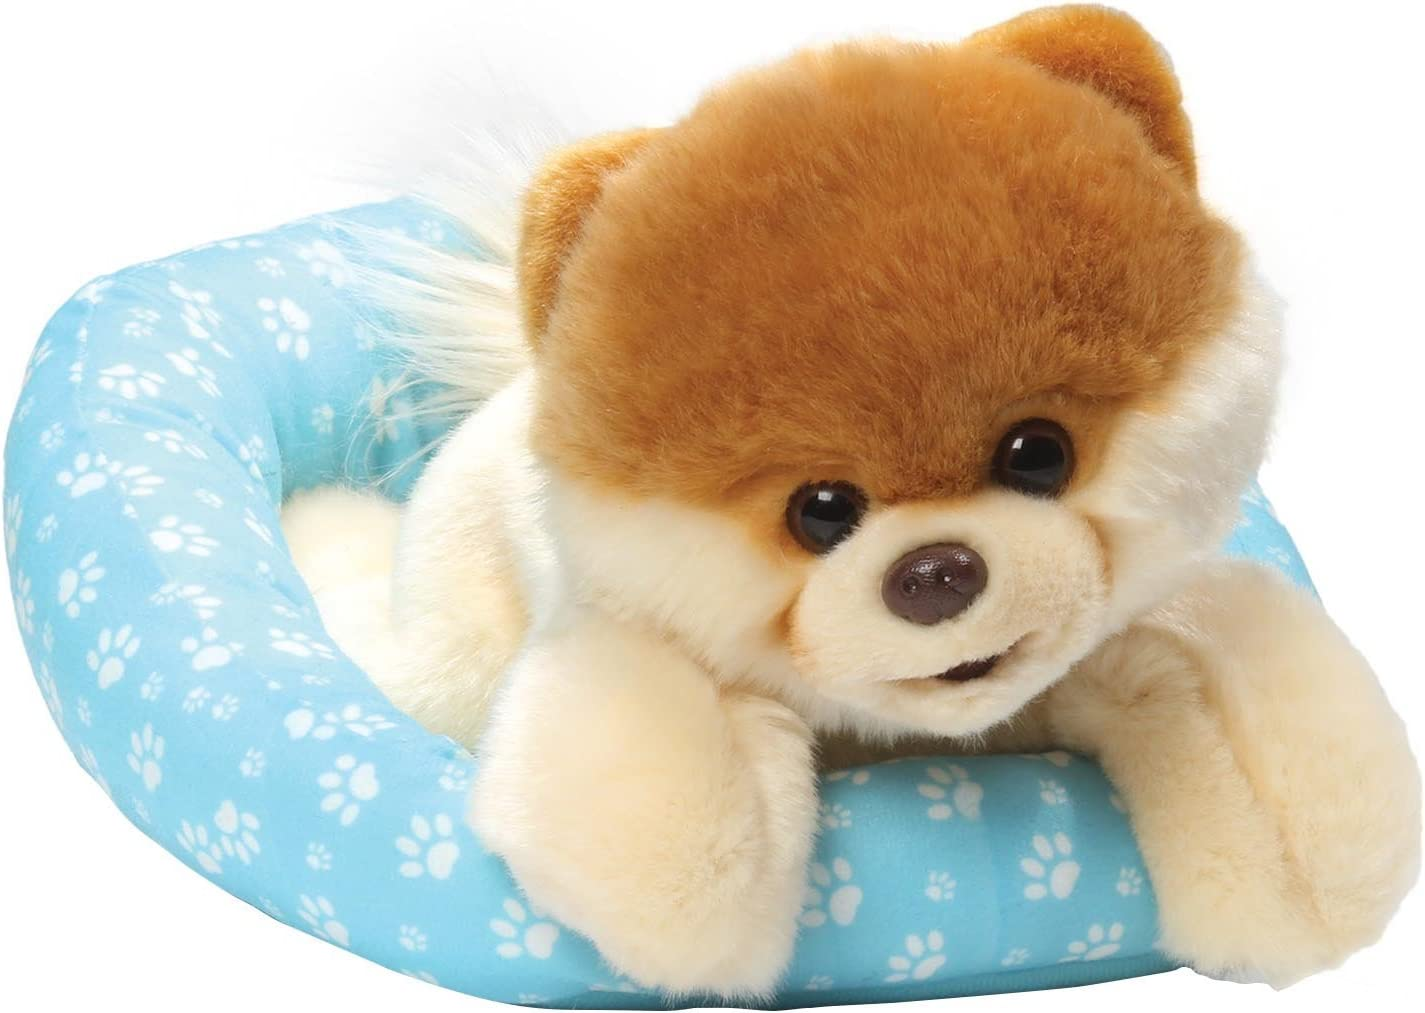 Easy-to-use Gund Bedtime Boo Clearance SALE! Limited time! World's Cutest Plush Stuffed Toy Dog